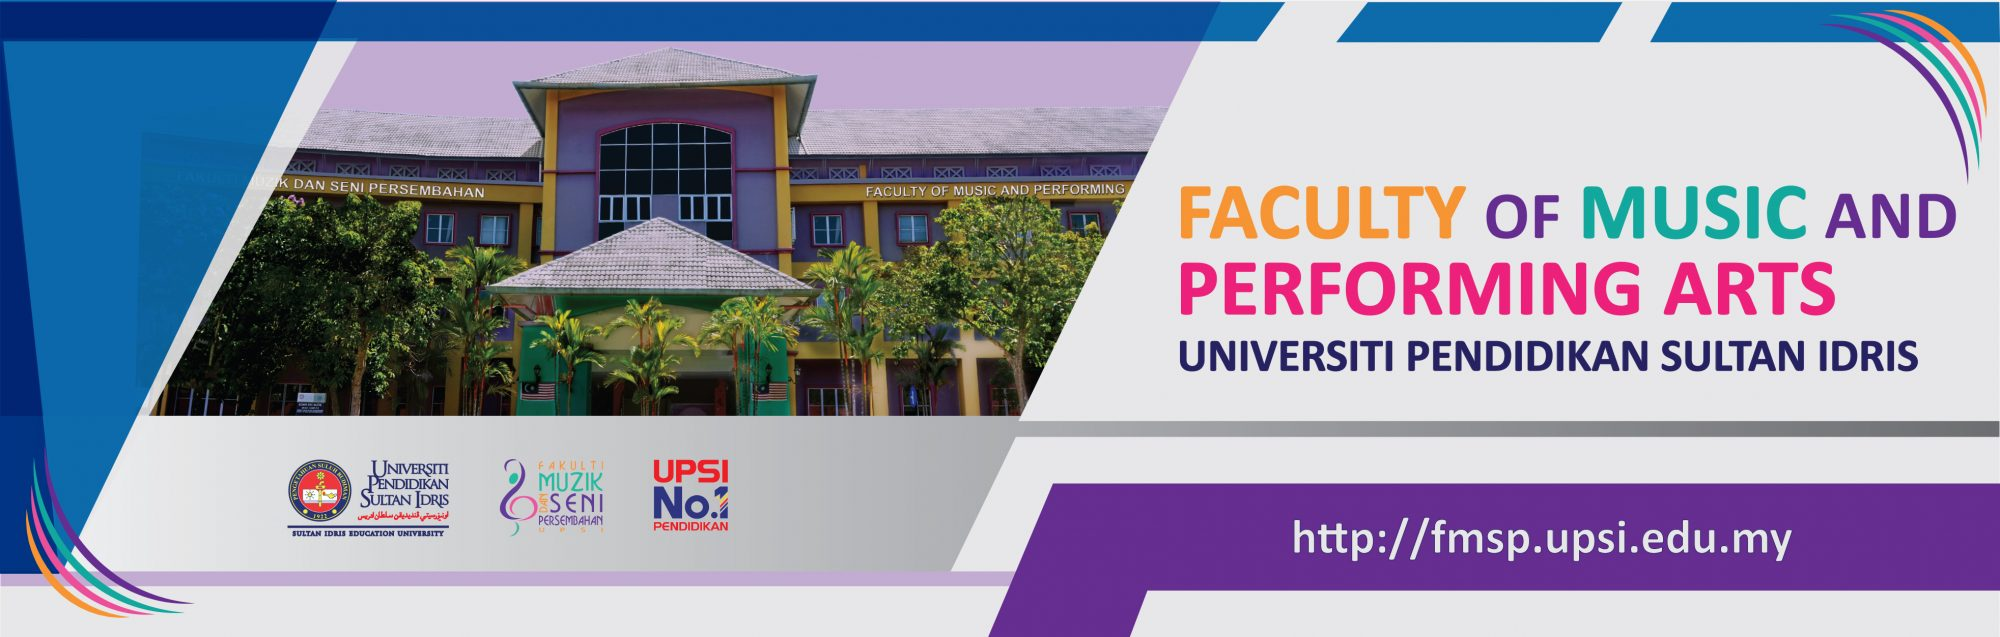 UPSI | FACULTY OF MUSIC AND PERFORMING ARTS